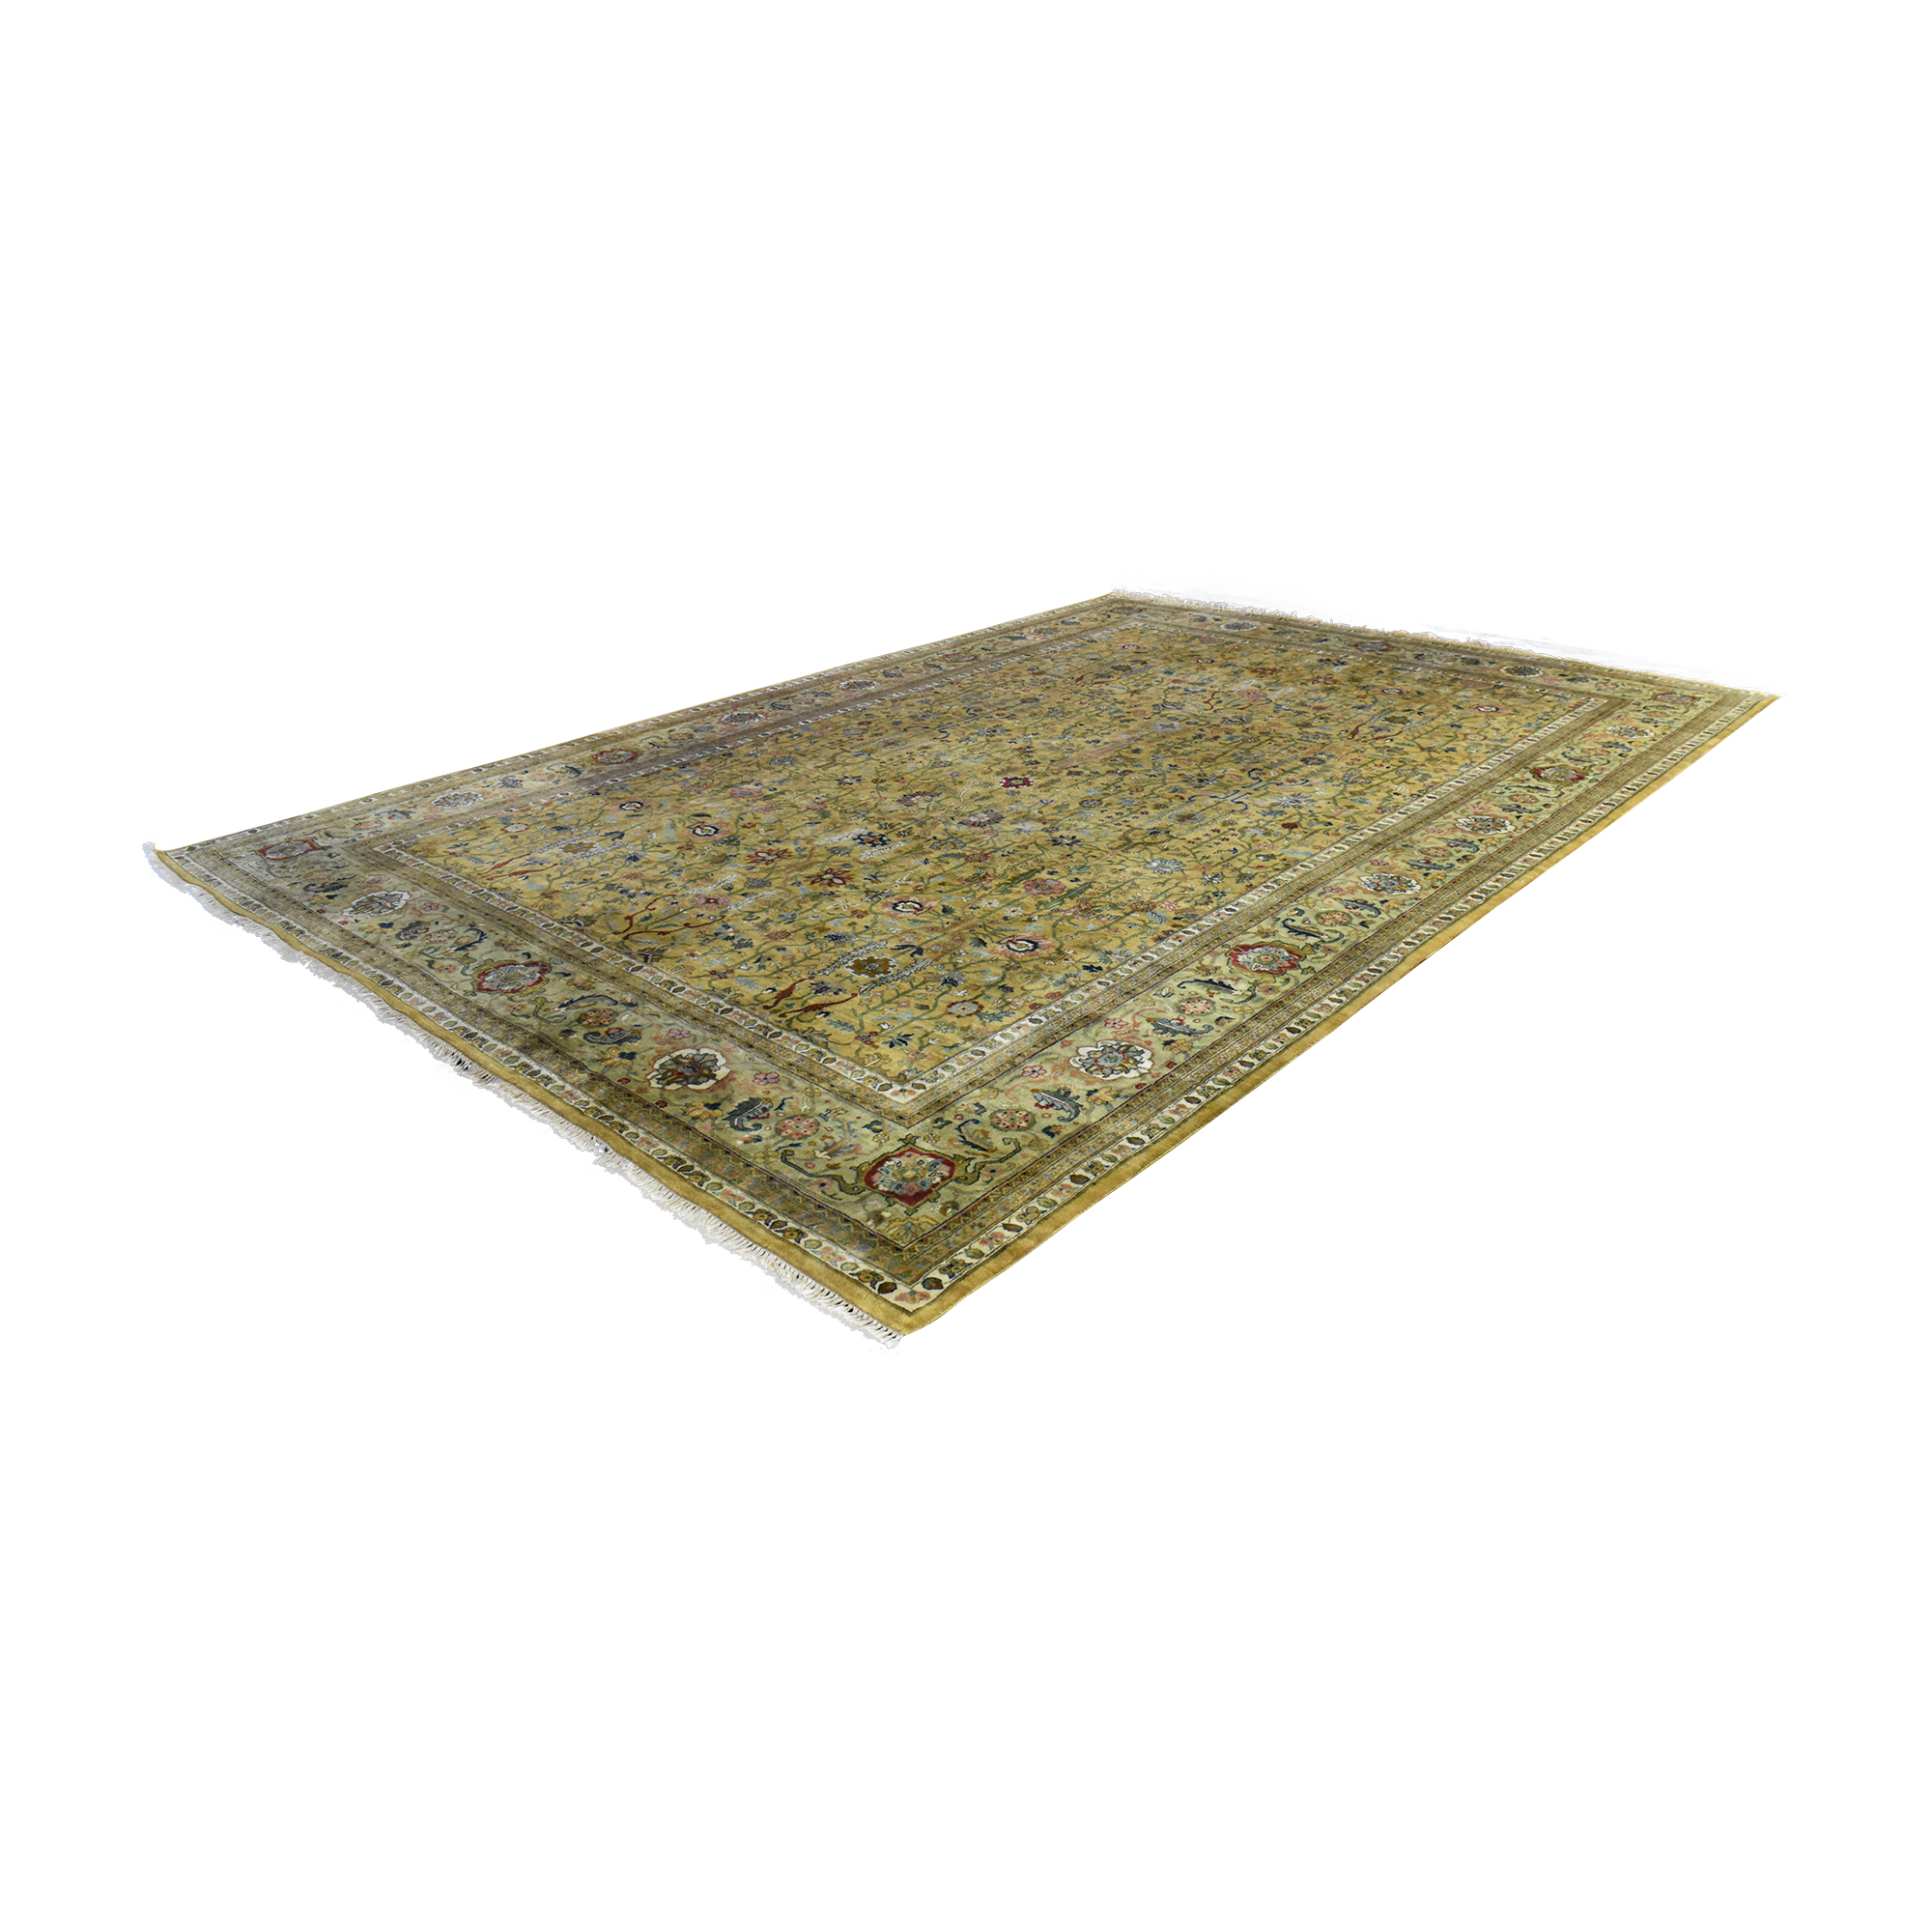 Samad Samad Golden Age Collection Brilliance Area Rug pa